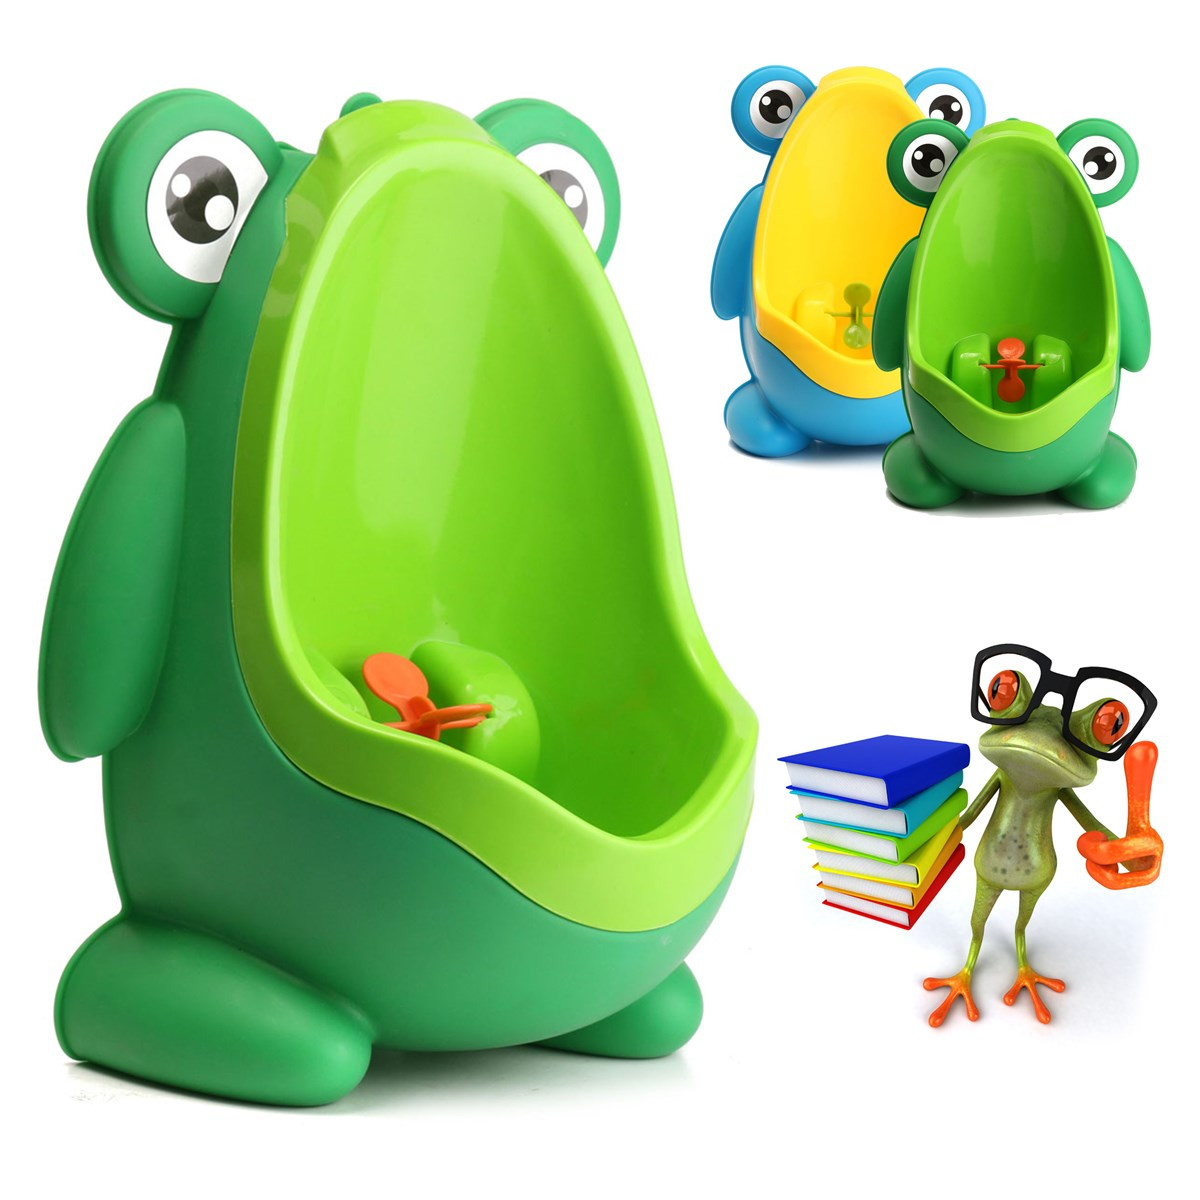 Frog Potty Training Urine Urinal Toilet for Children Kids Toddler Baby Boys Pee Trainer Aiming Target,Green color